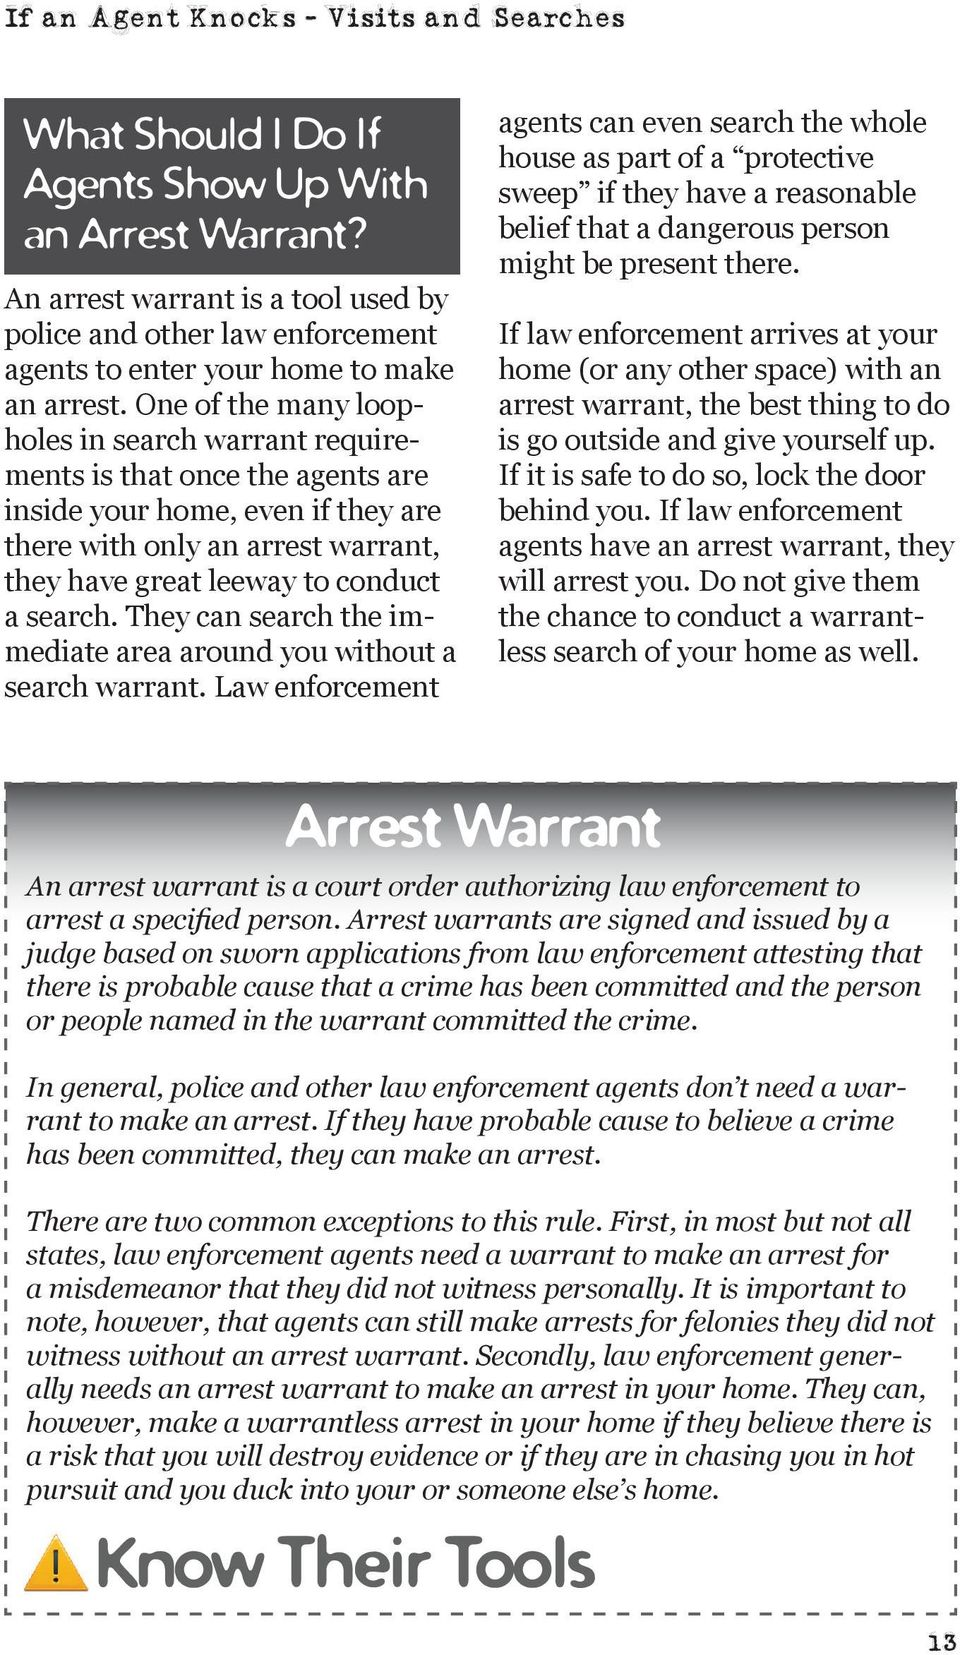 One of the many loopholes in search warrant requirements is that once the agents are inside your home, even if they are there with only an arrest warrant, they have great leeway to conduct a search.